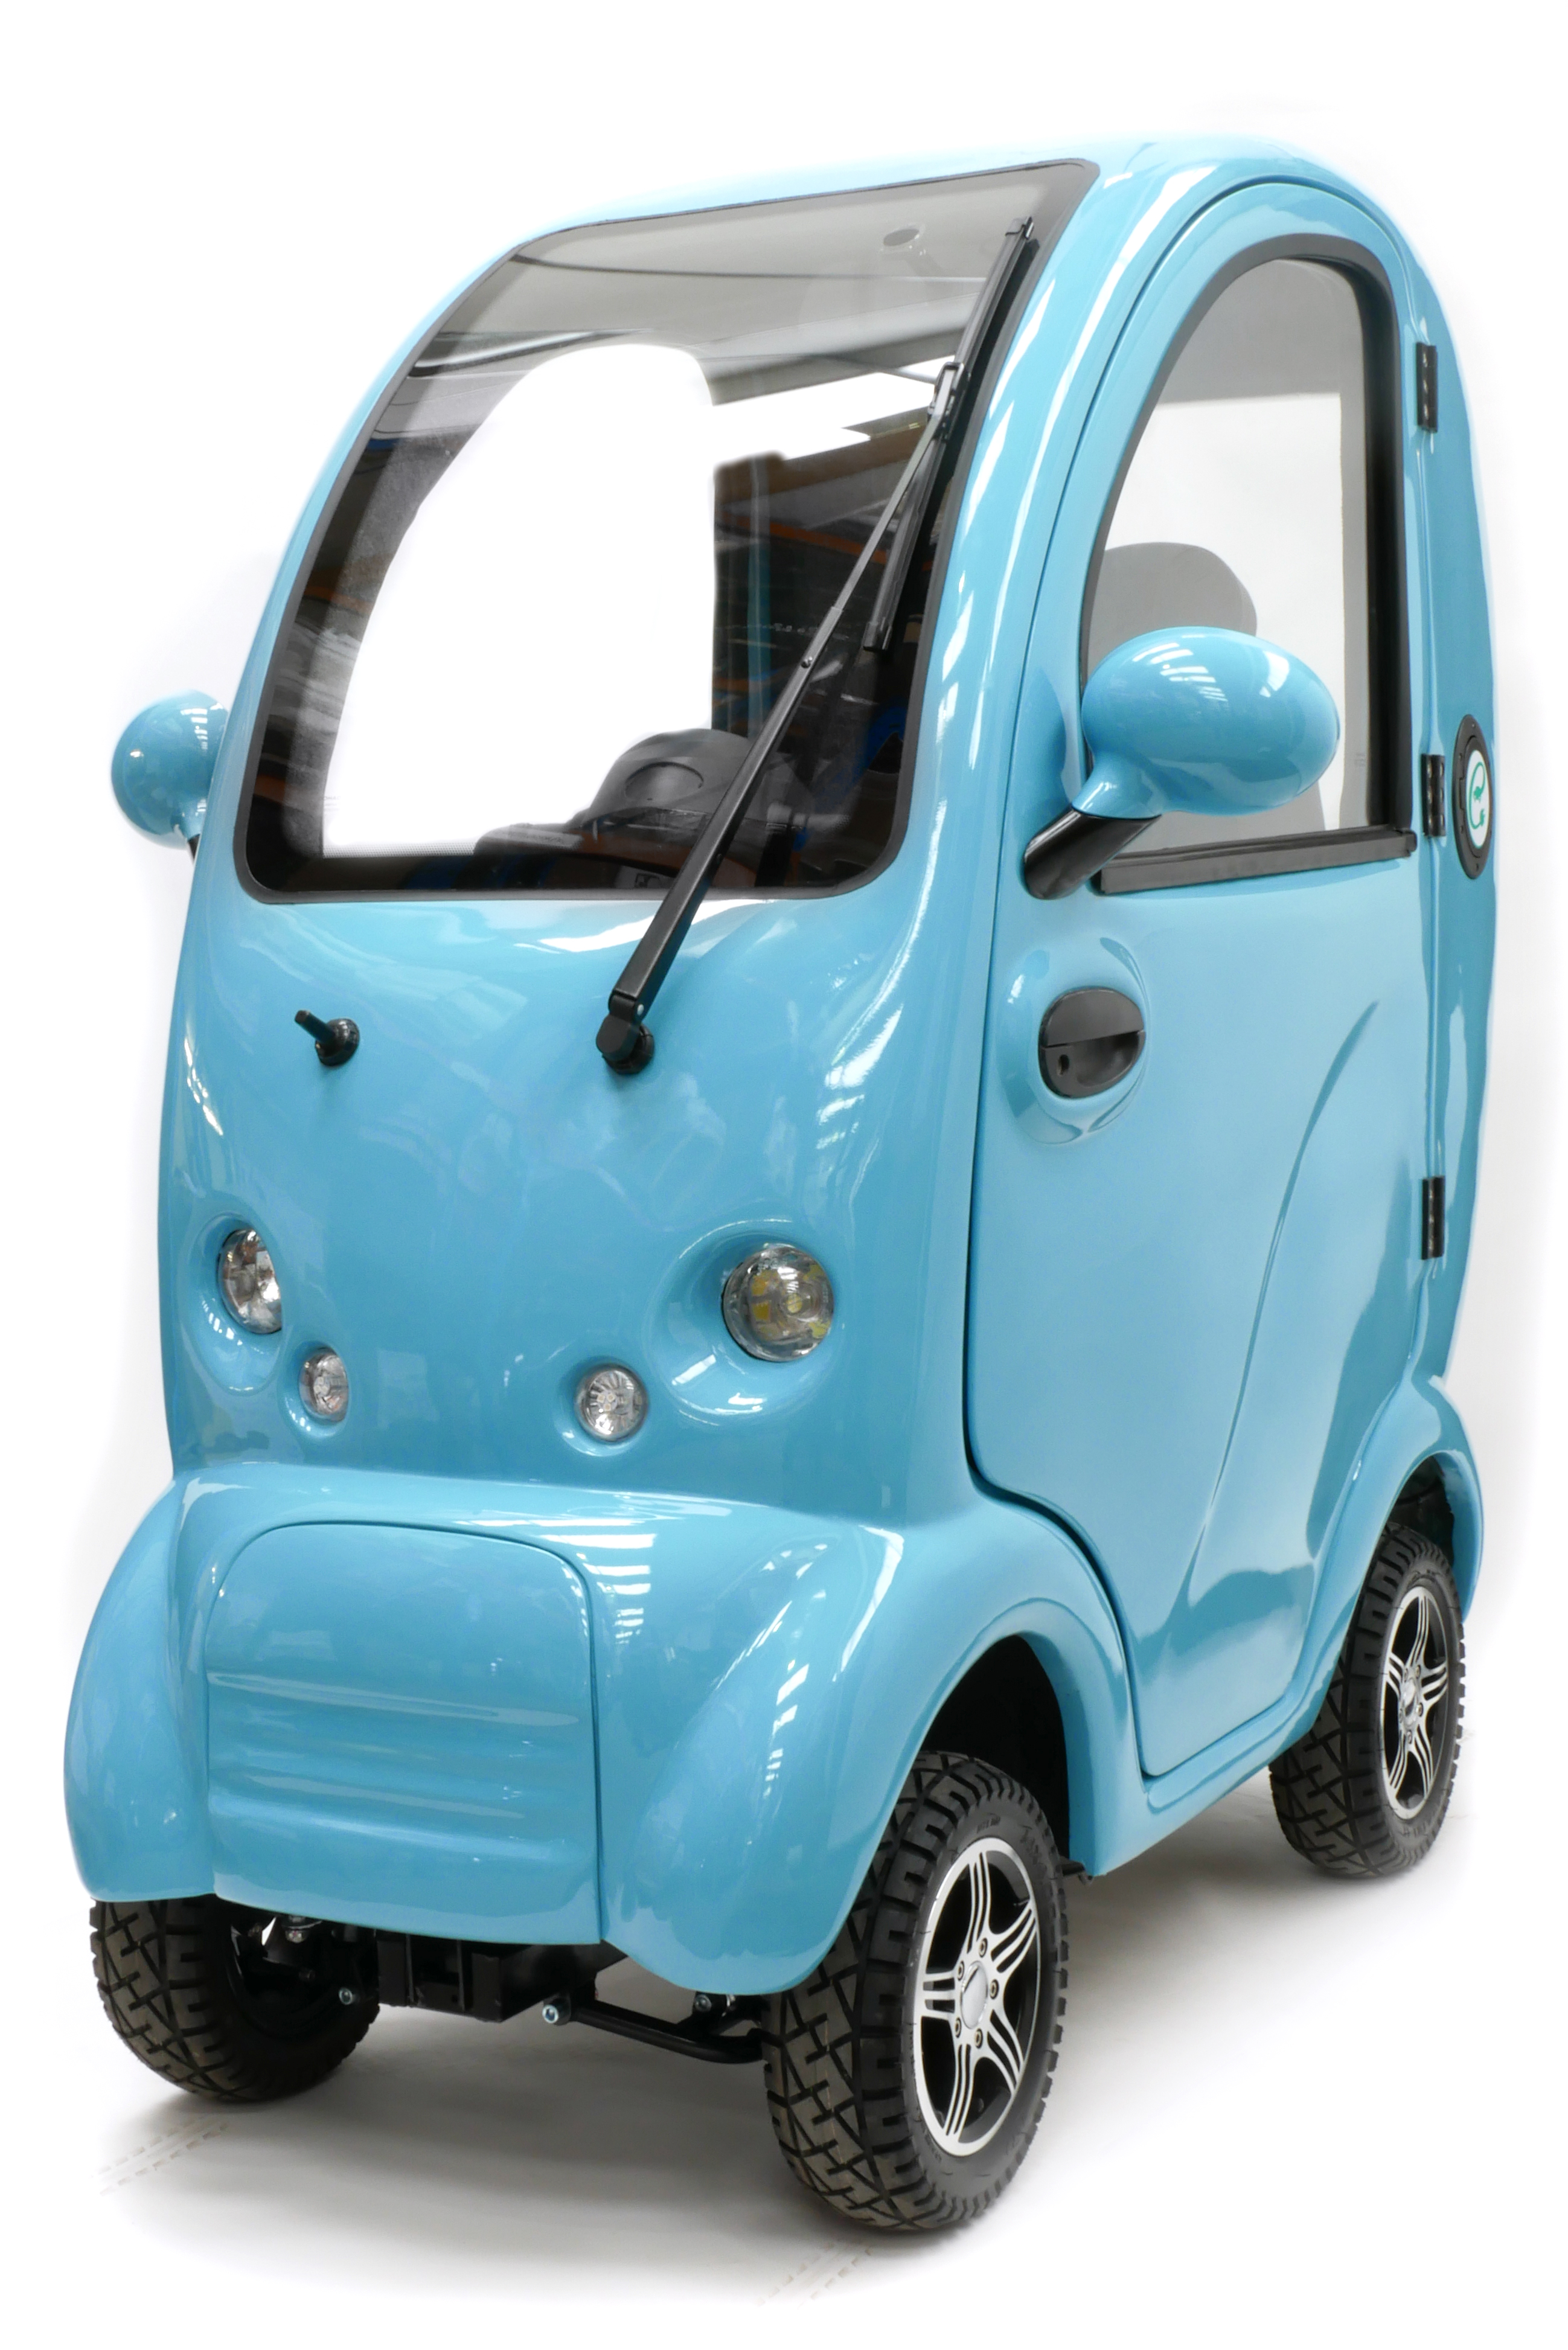 Cabin Car Scooter